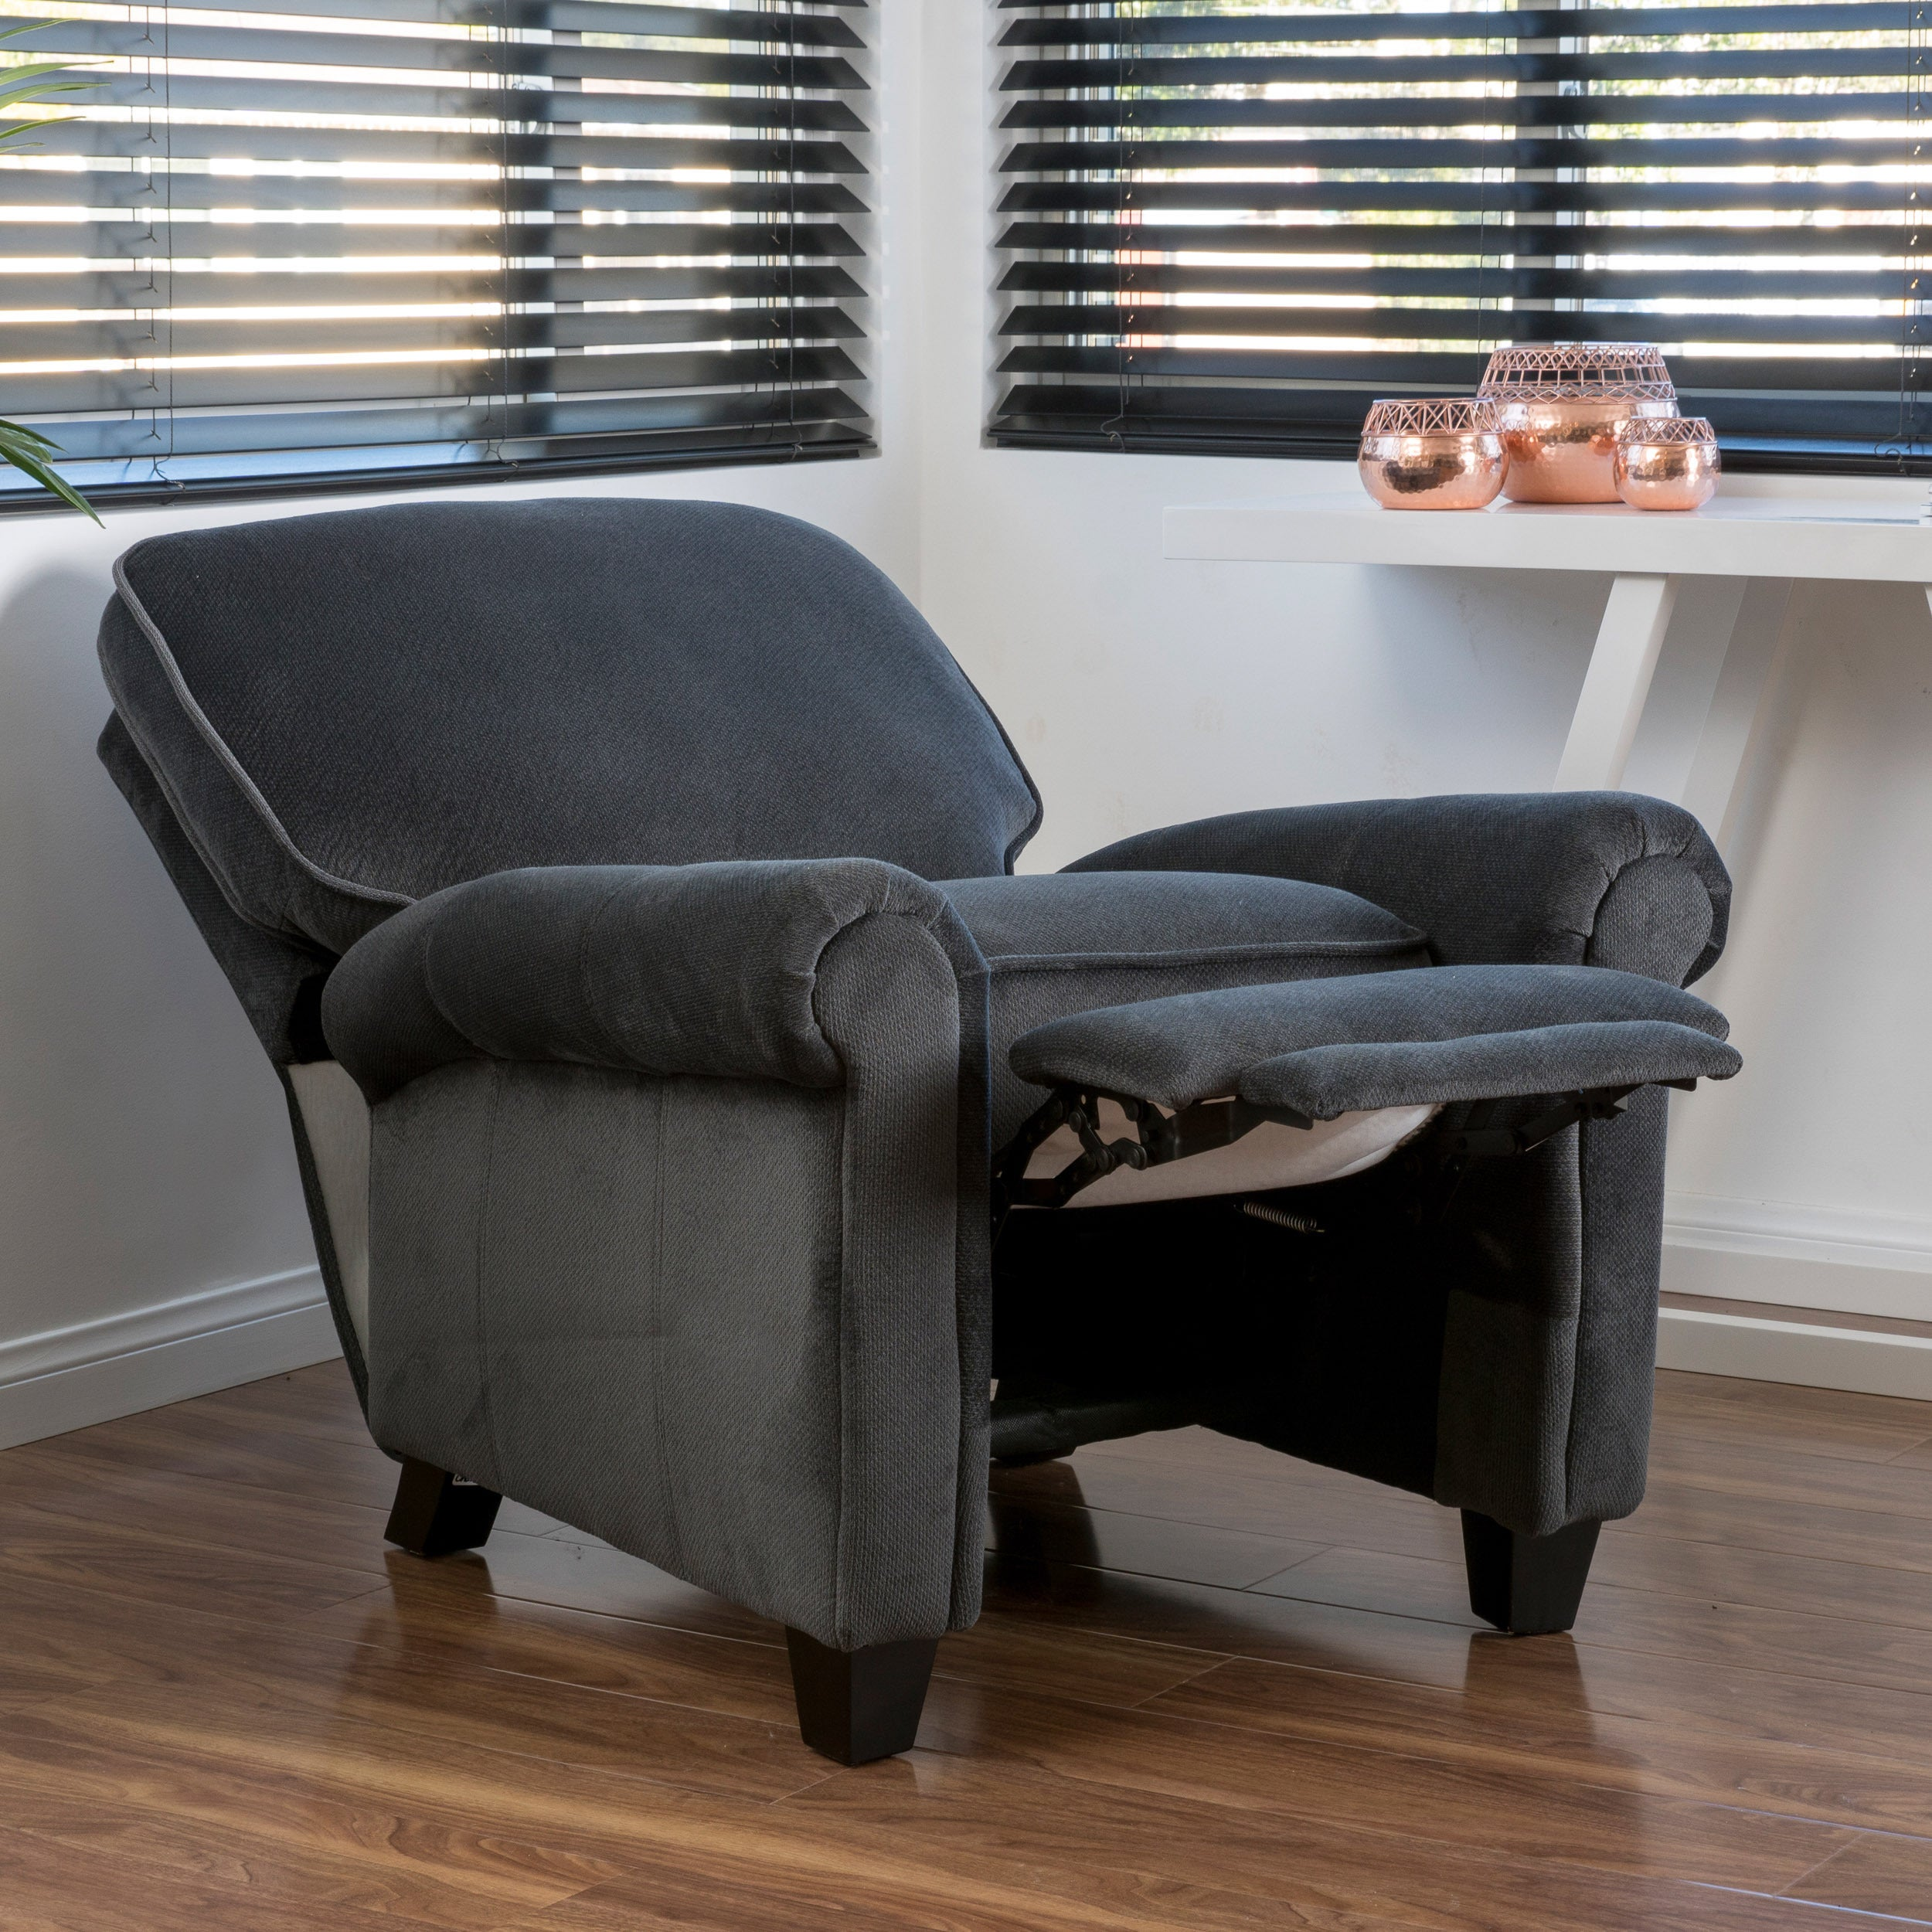 Dallon Fabric Recliner Club Chair By Christopher Knight Home On Free Shipping Today 11104775